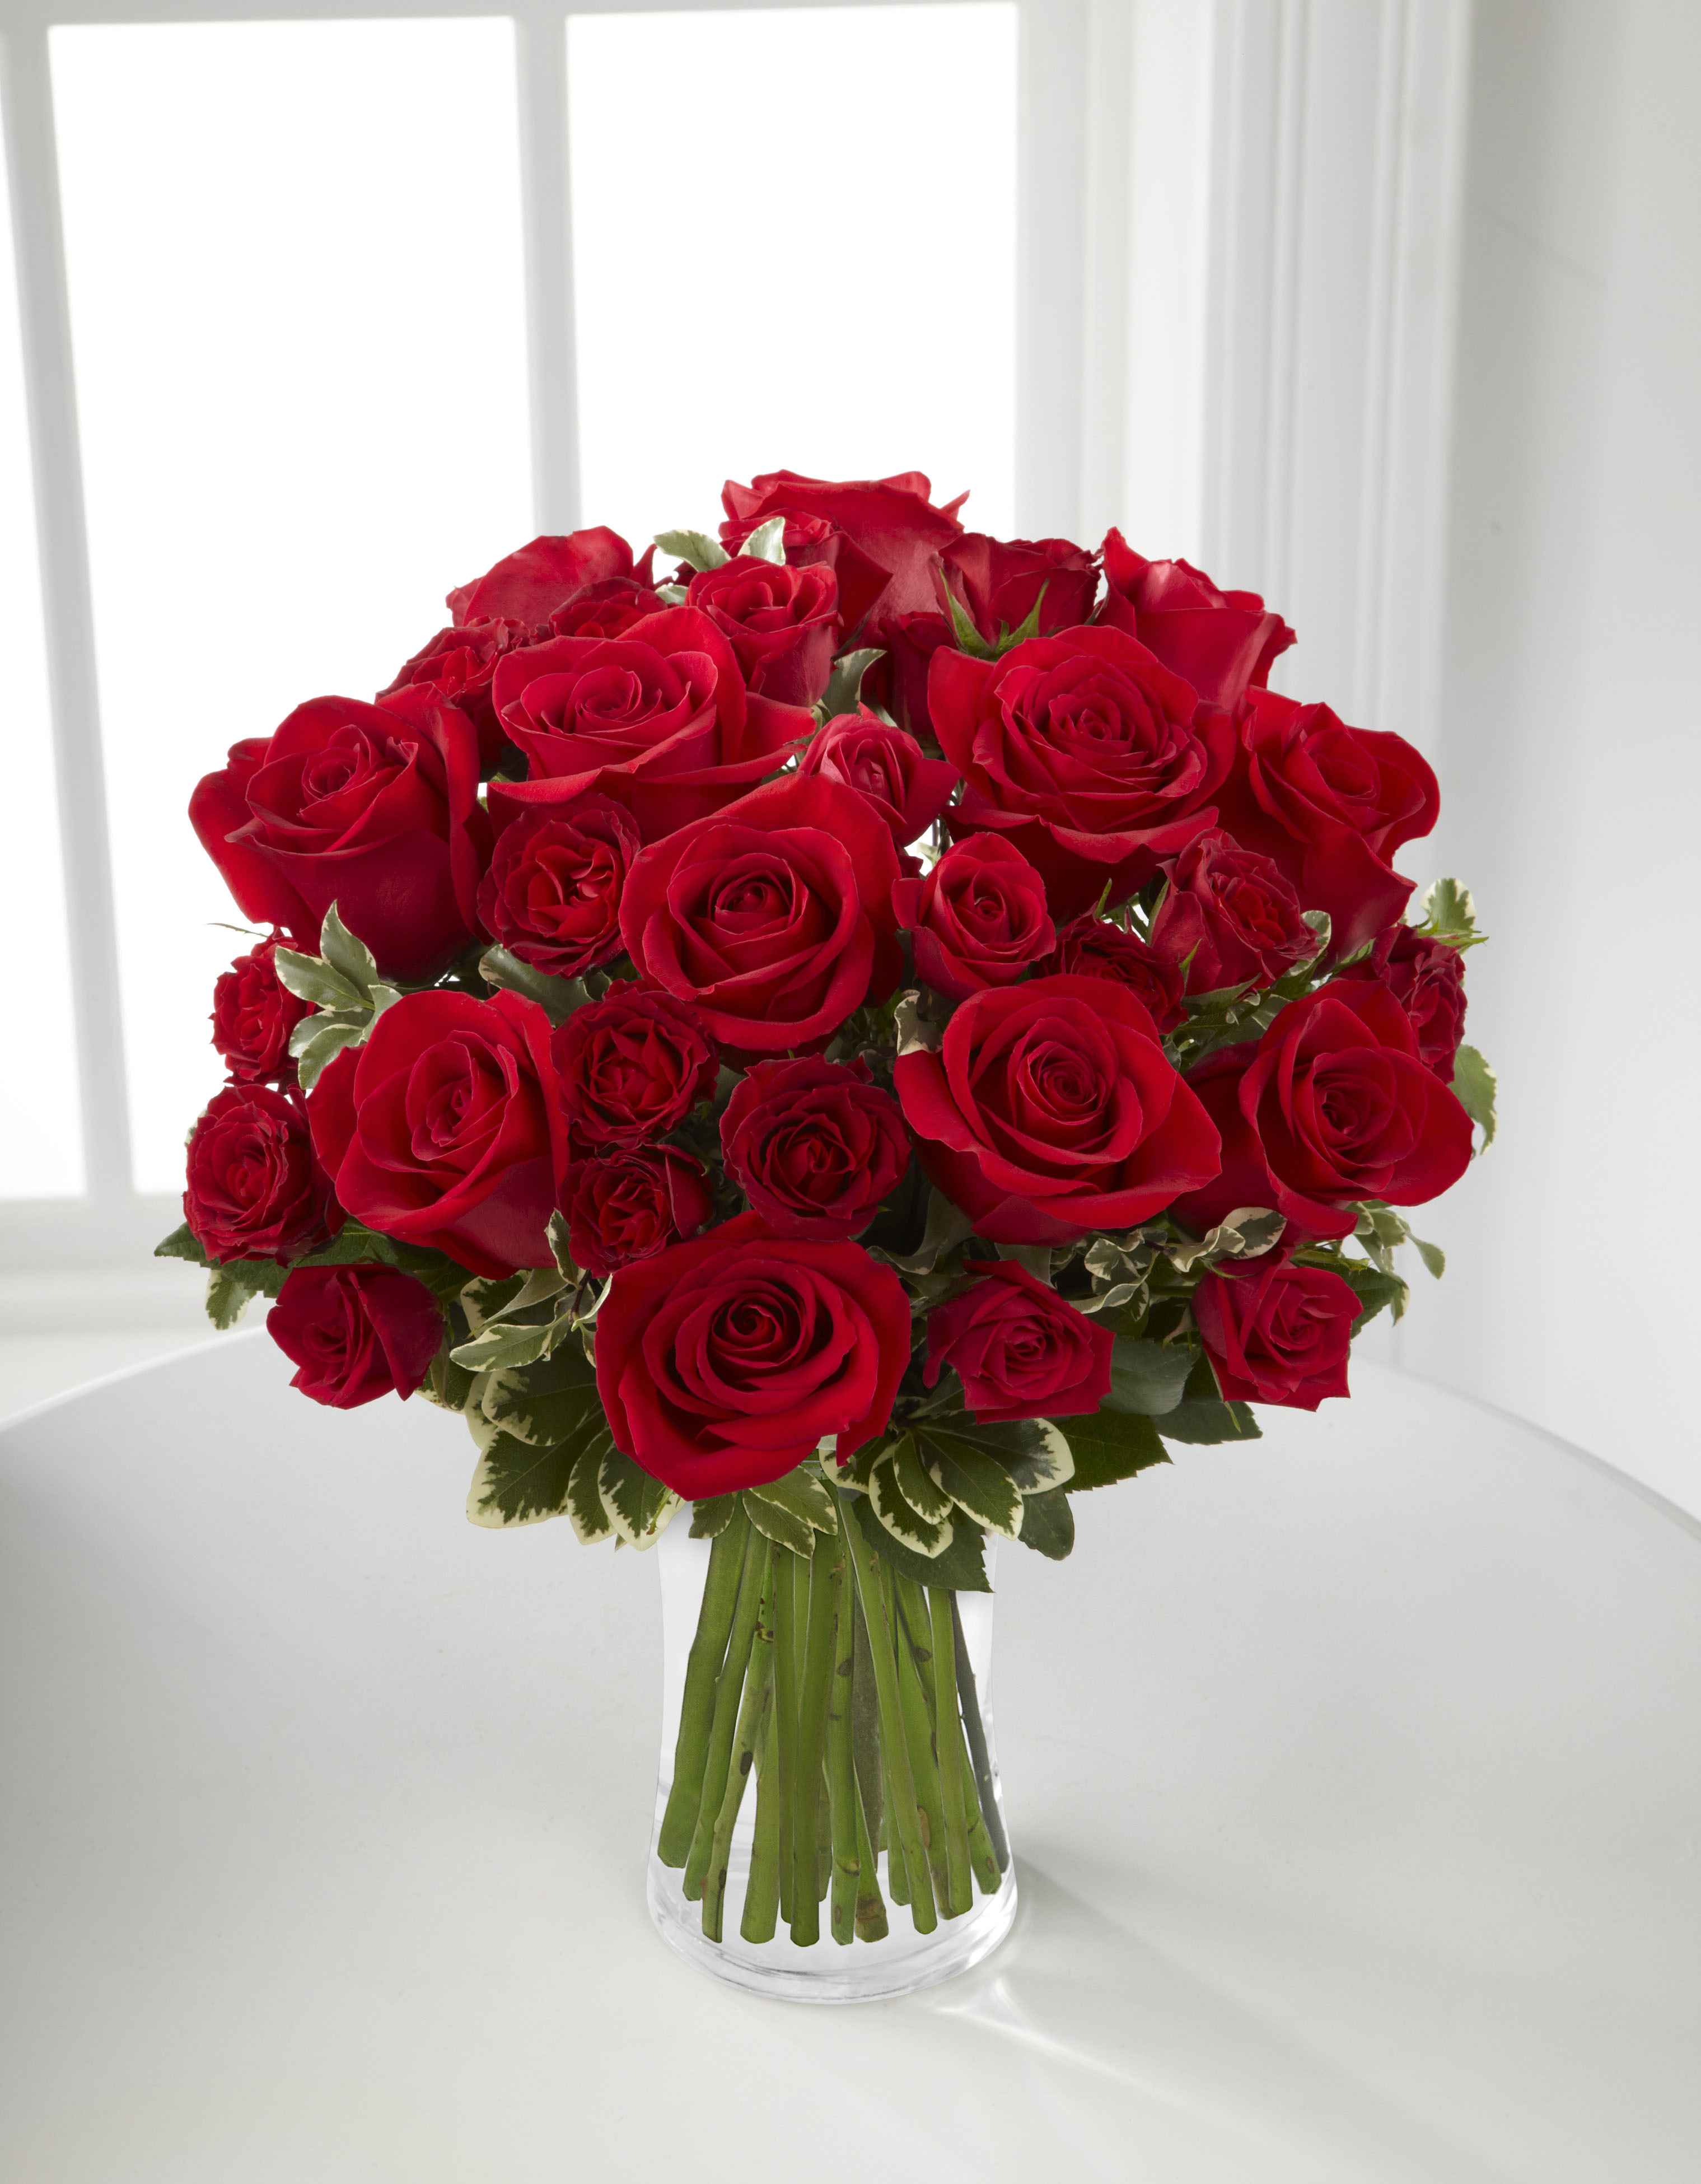 B23 4375 The FTD® Red Romance™ Rose Bouquet By Tognoli Gifts